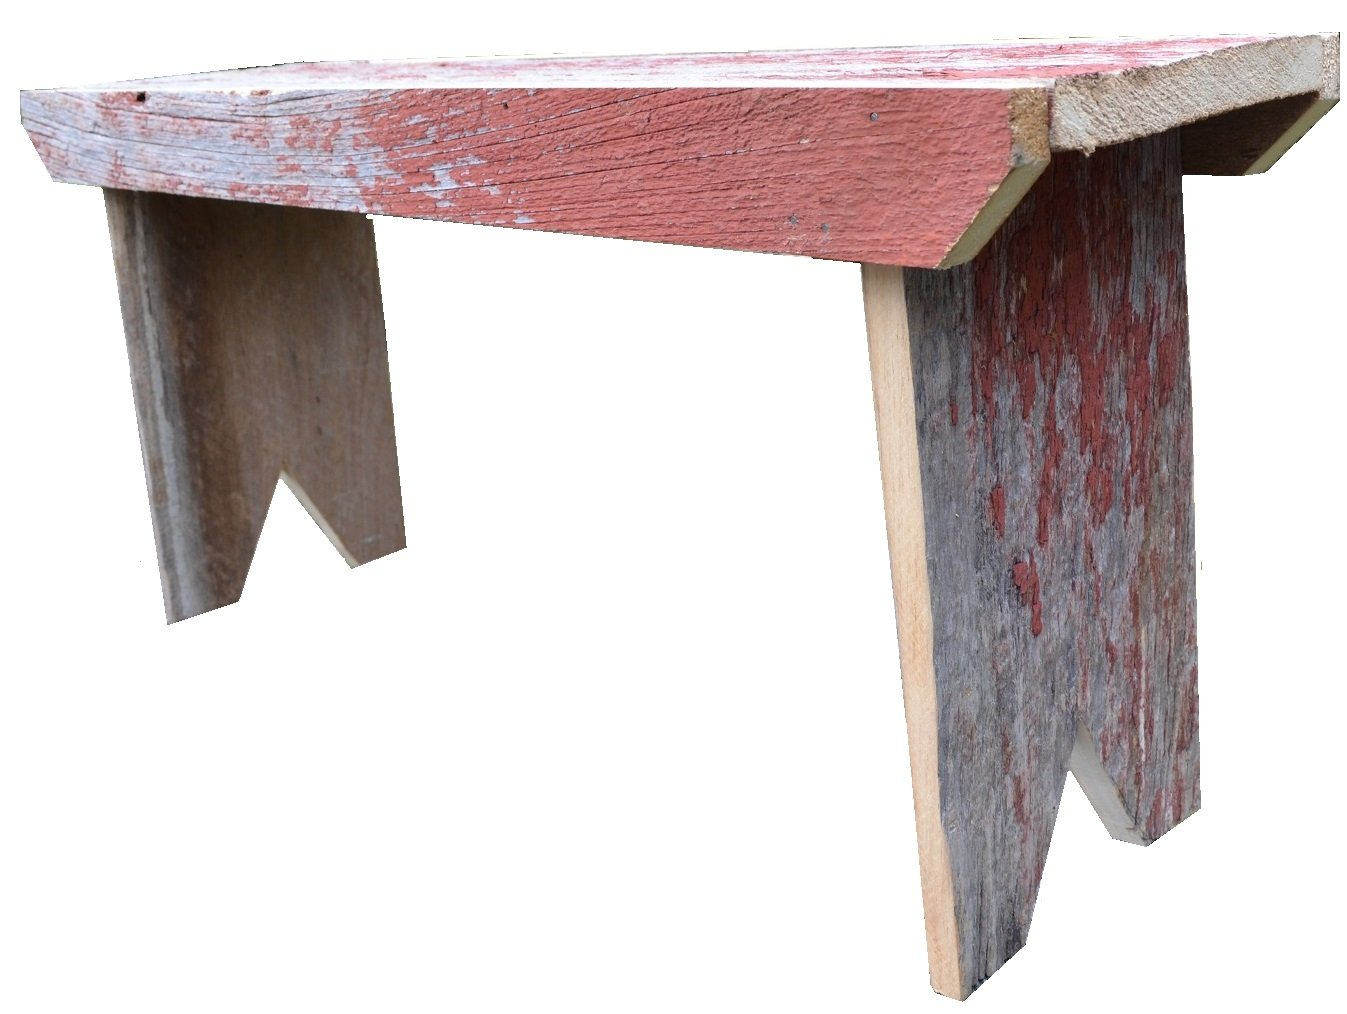 Astounding Amishwares Barnwood Bench 3 Foot Reclaimed Decorative Barn Wood Bench Color Will Vary Usually Red White Brown Gray Or Natural Nice Added Touch Bralicious Painted Fabric Chair Ideas Braliciousco